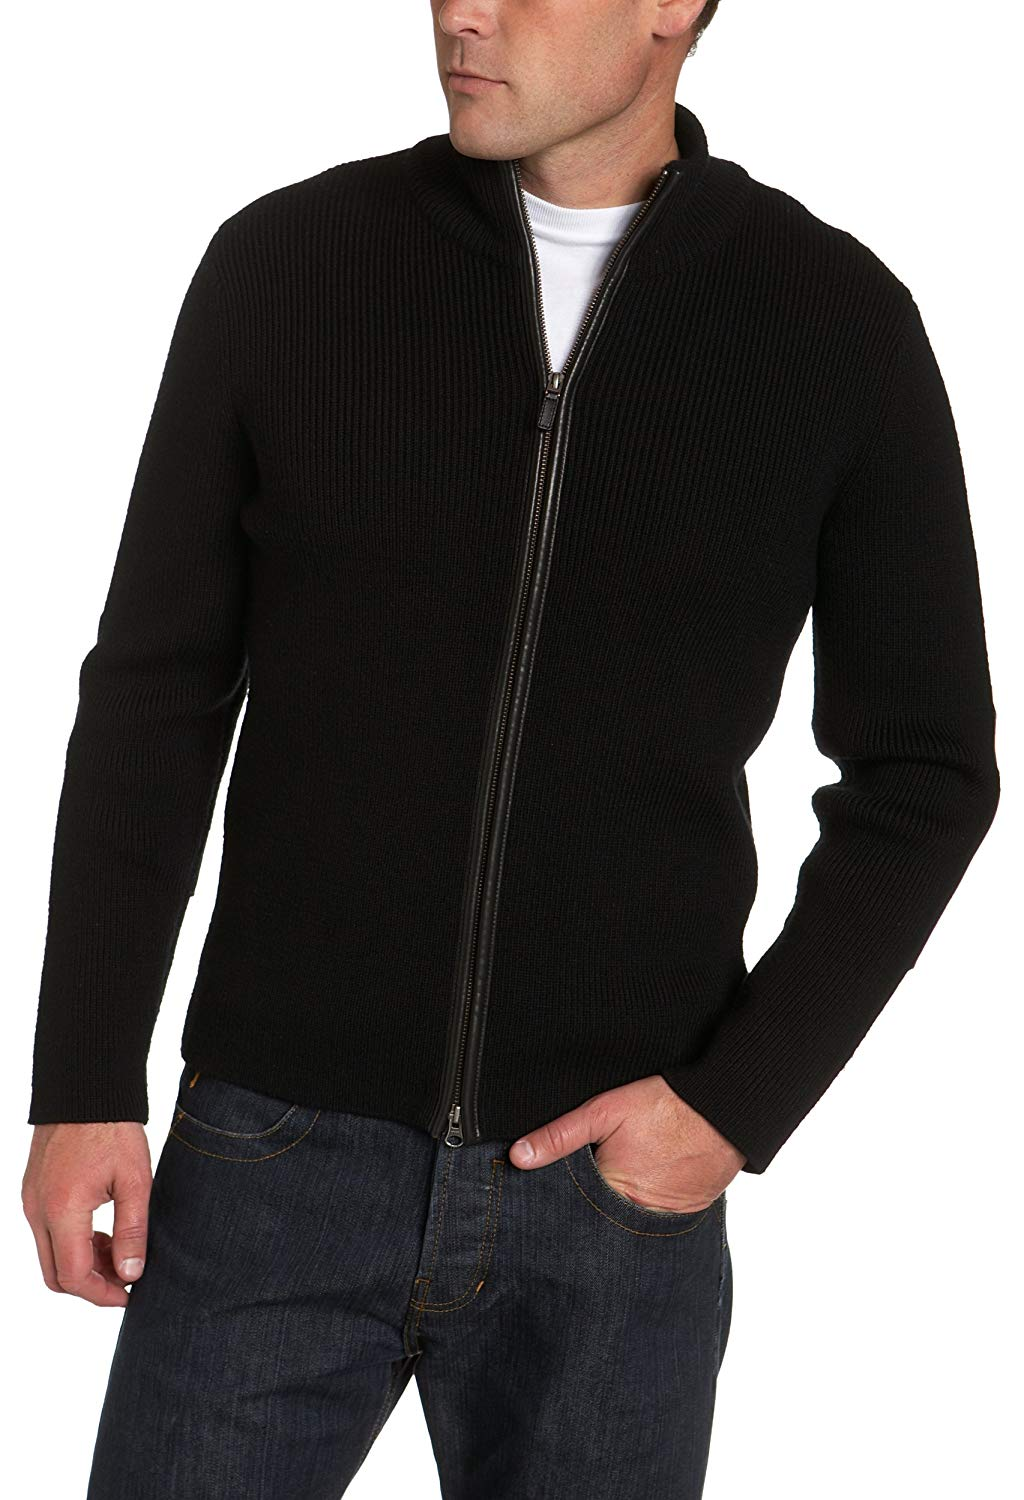 Cole Haan Merino Knit Zip Front Sweater, Size L